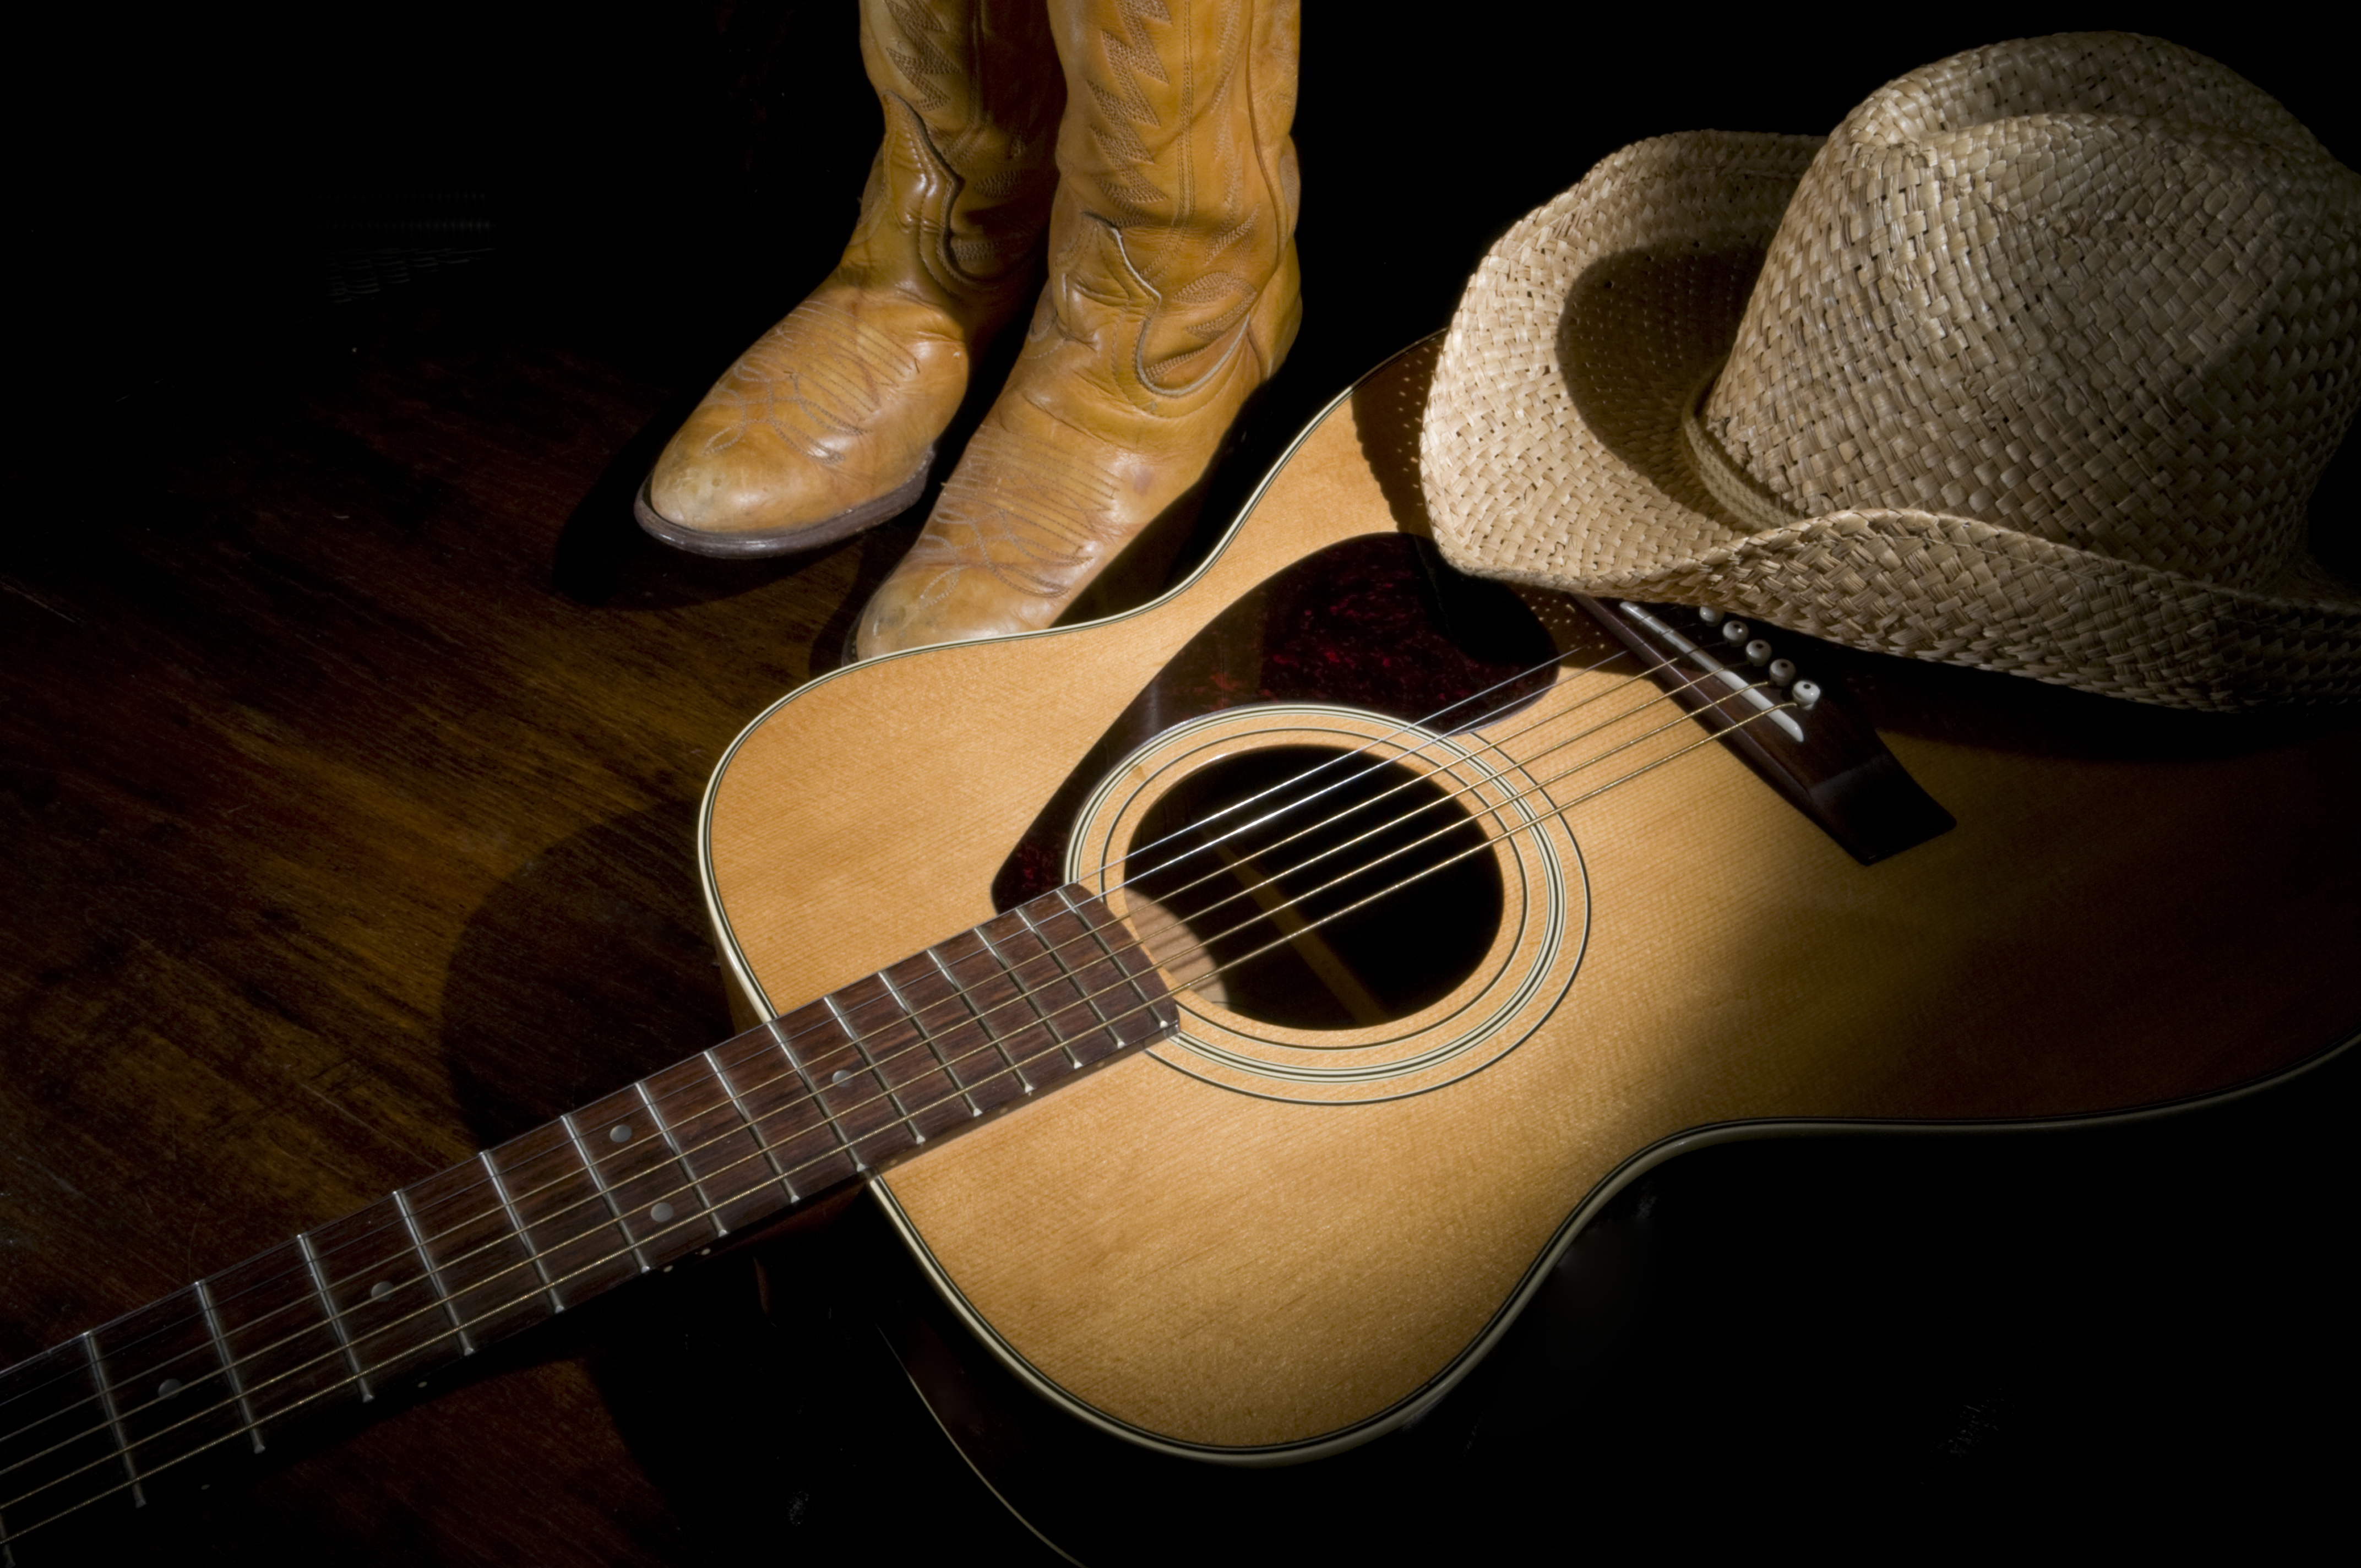 Cowboy hat and boots with guitar in country music setting